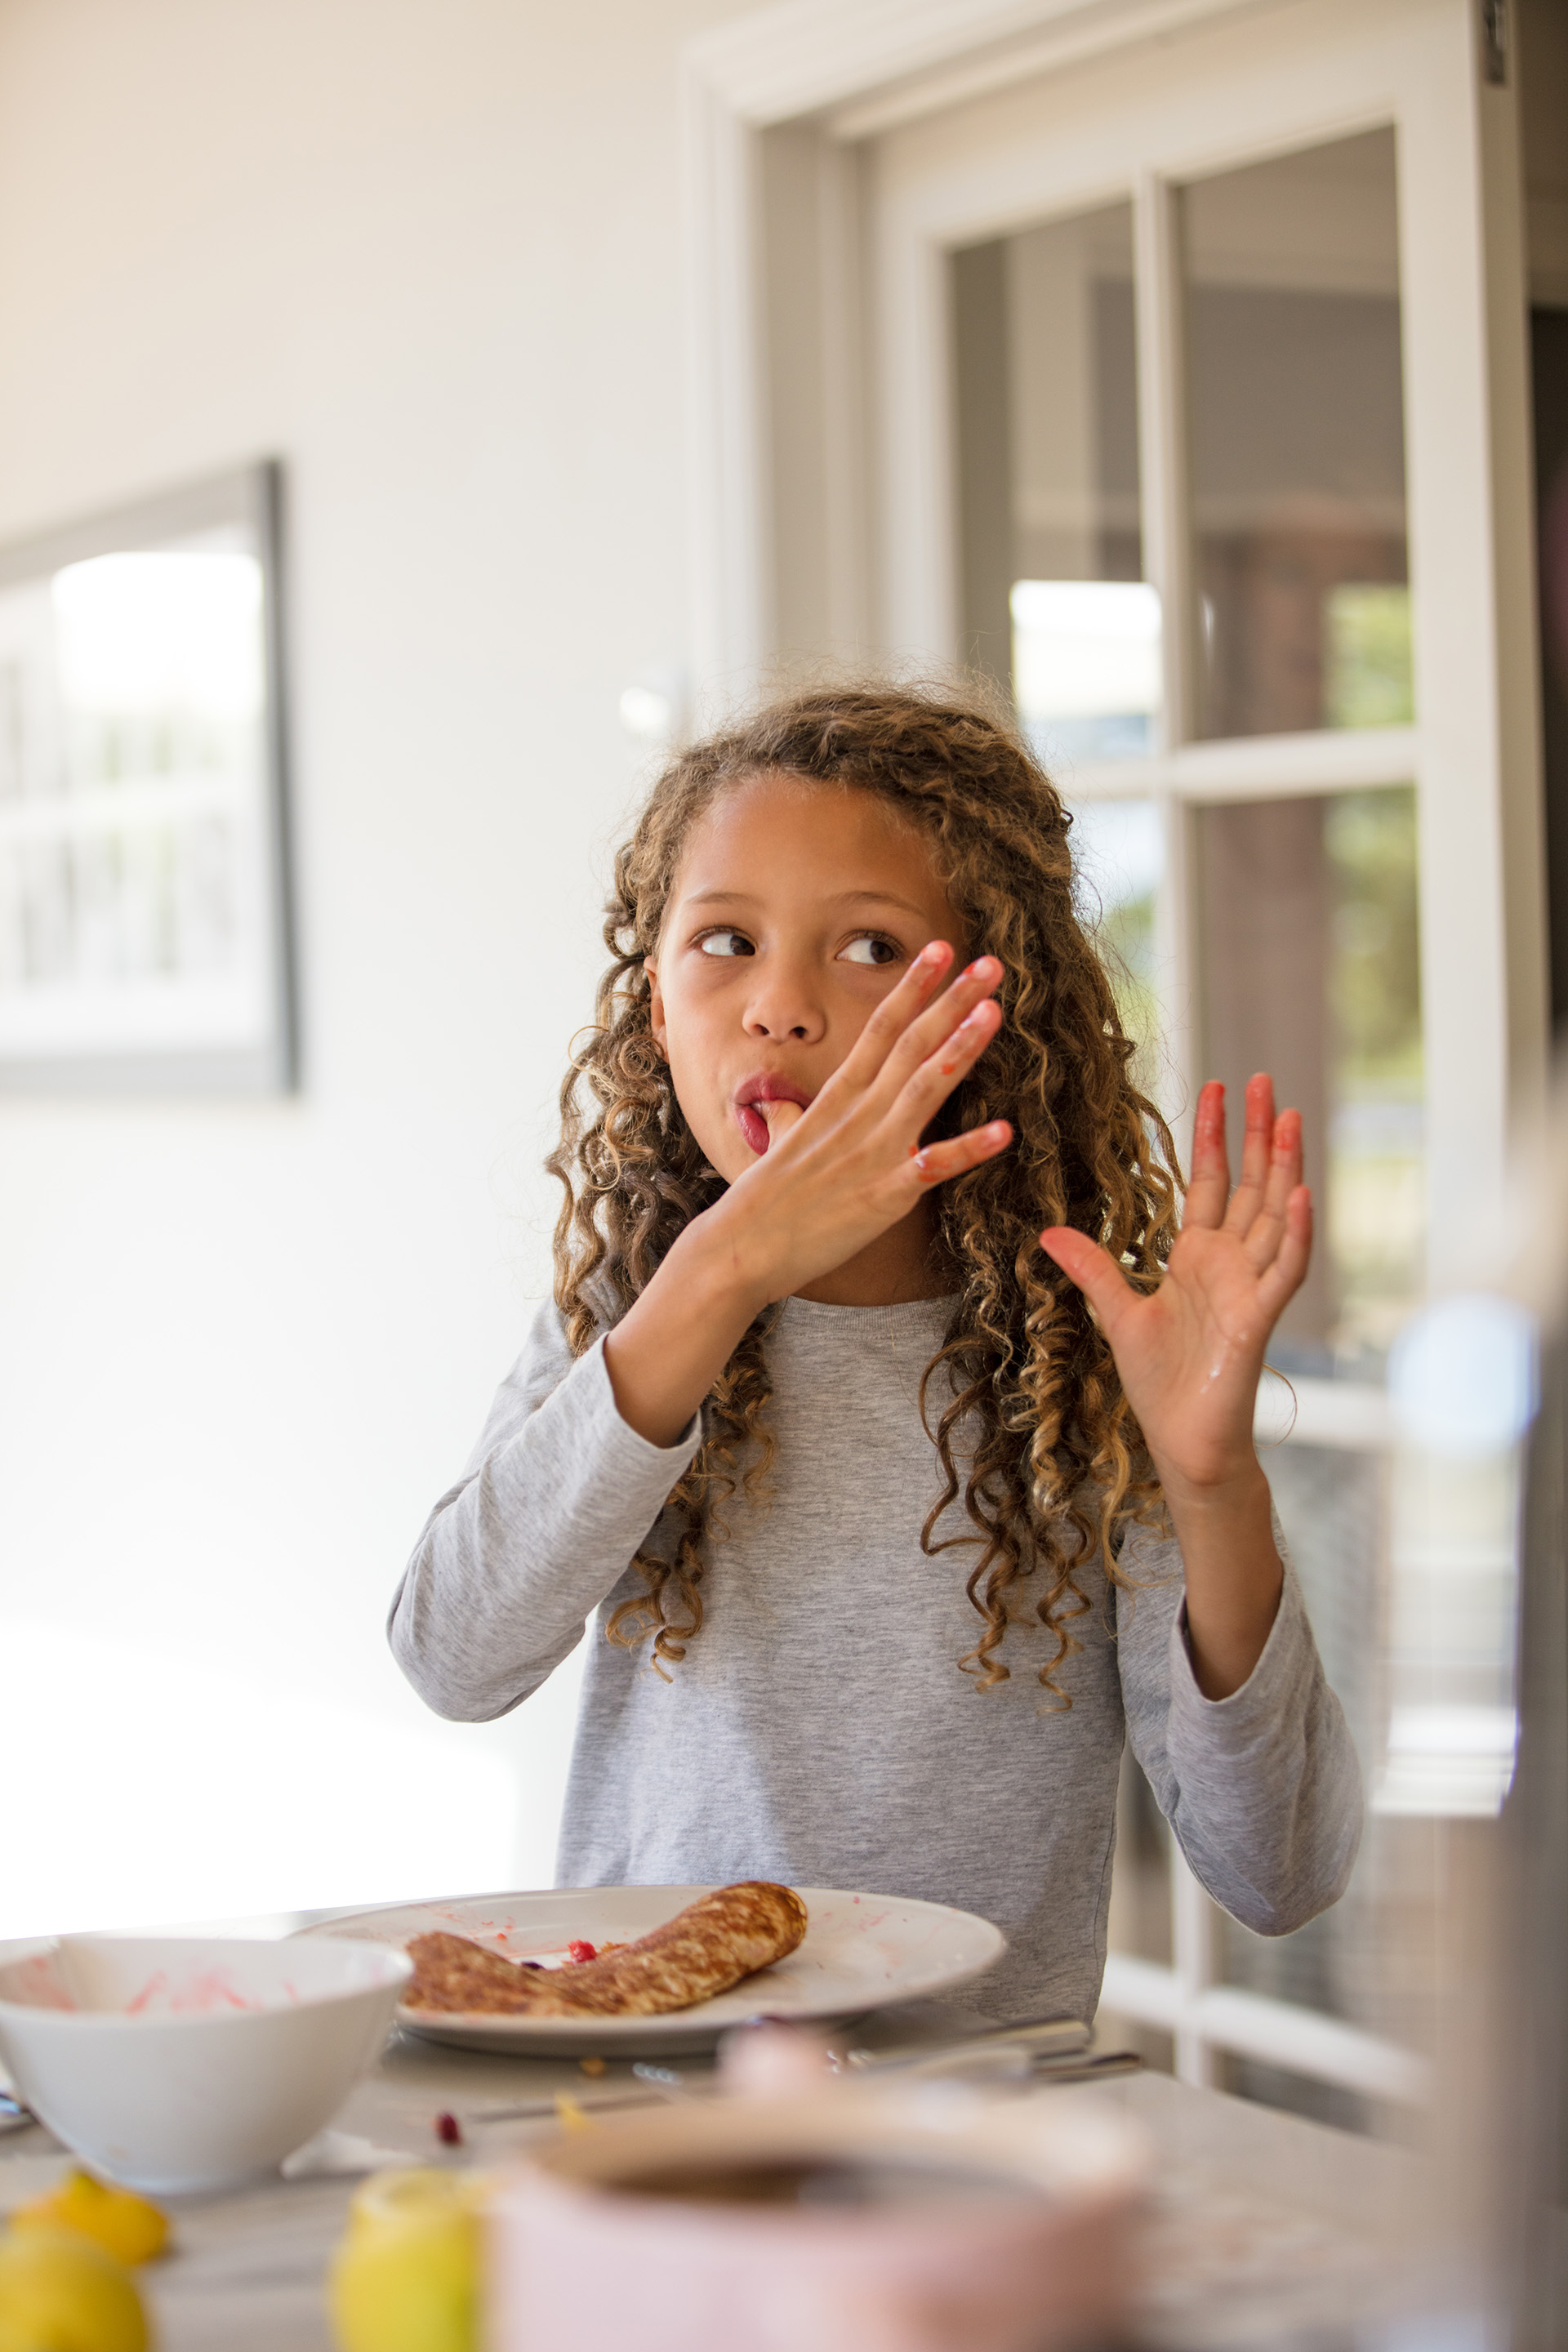 A child licking her thumb as she stands to eat her pancakes